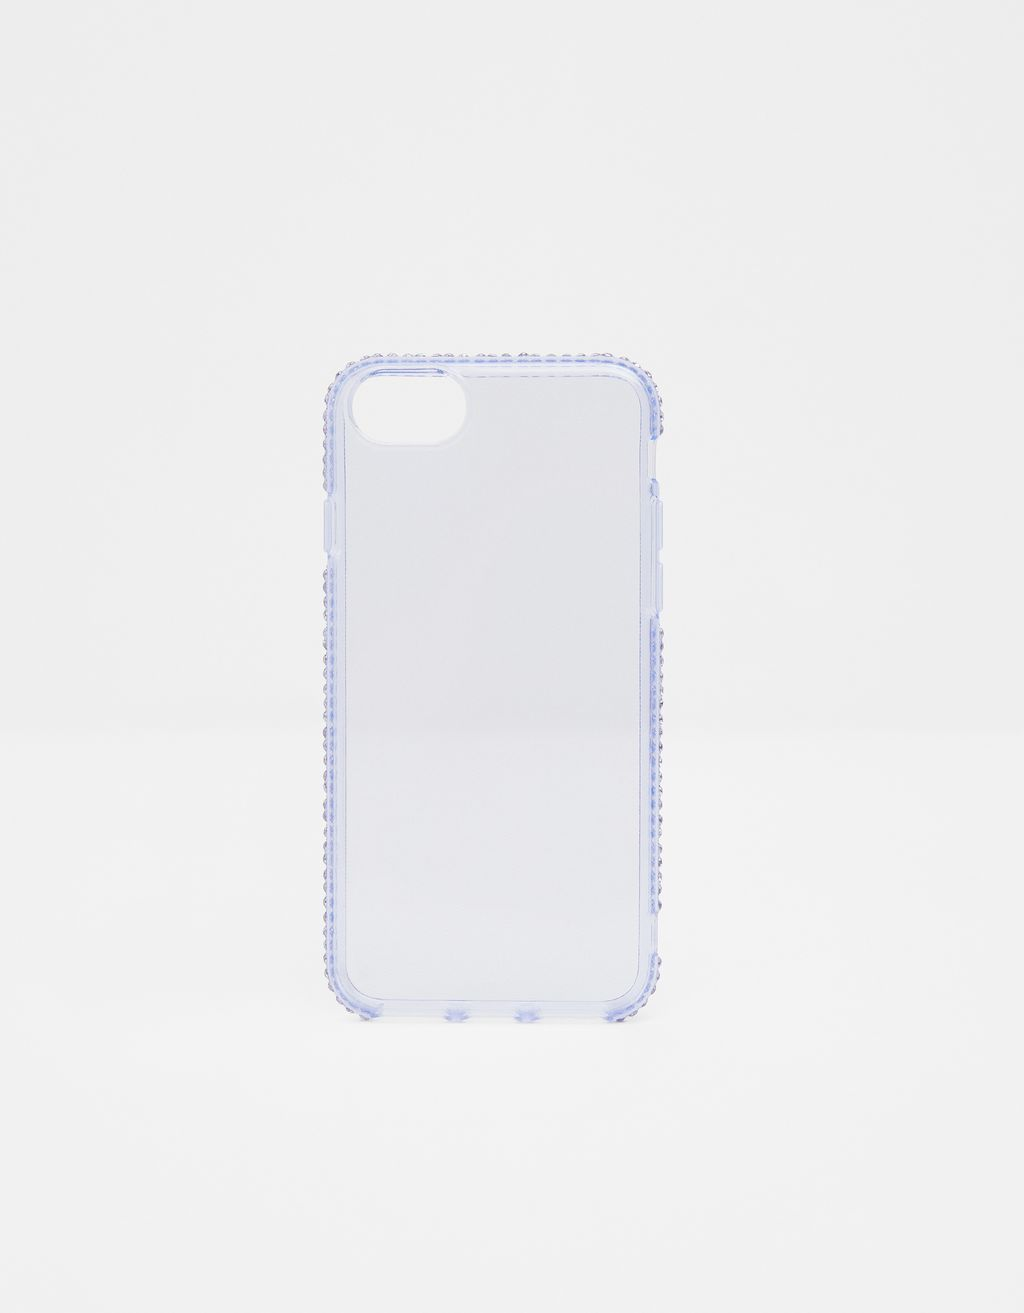 Cover iPhone 6 plus / 7 plus / 8 plus